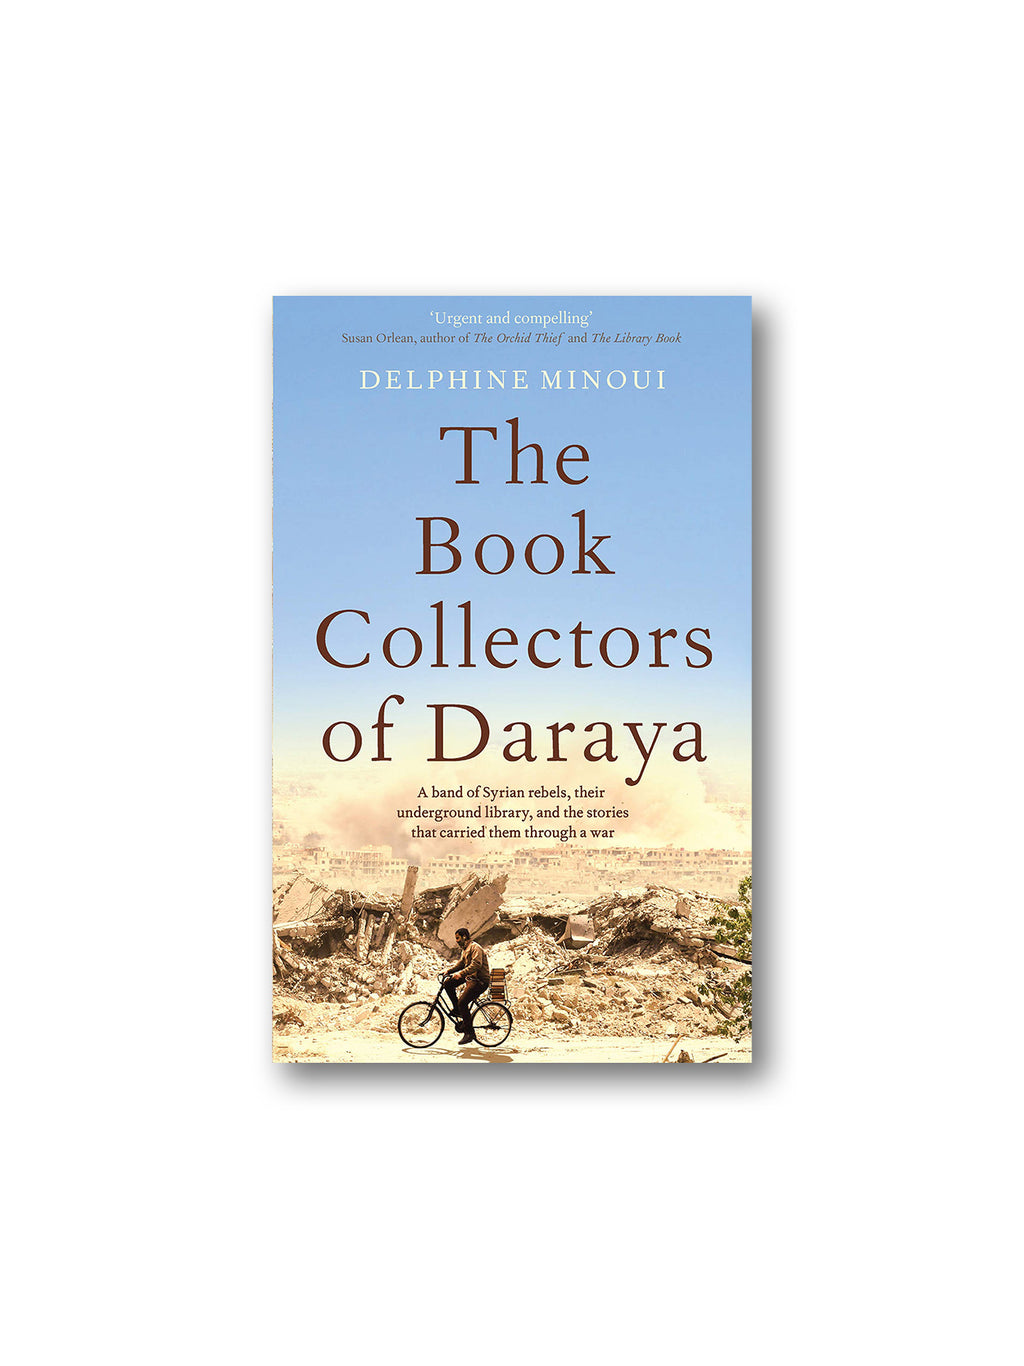 The Book Collectors of Daraya : A Band of Syrian Rebels, Their Underground Library, and the Stories that Carried Them Through a War